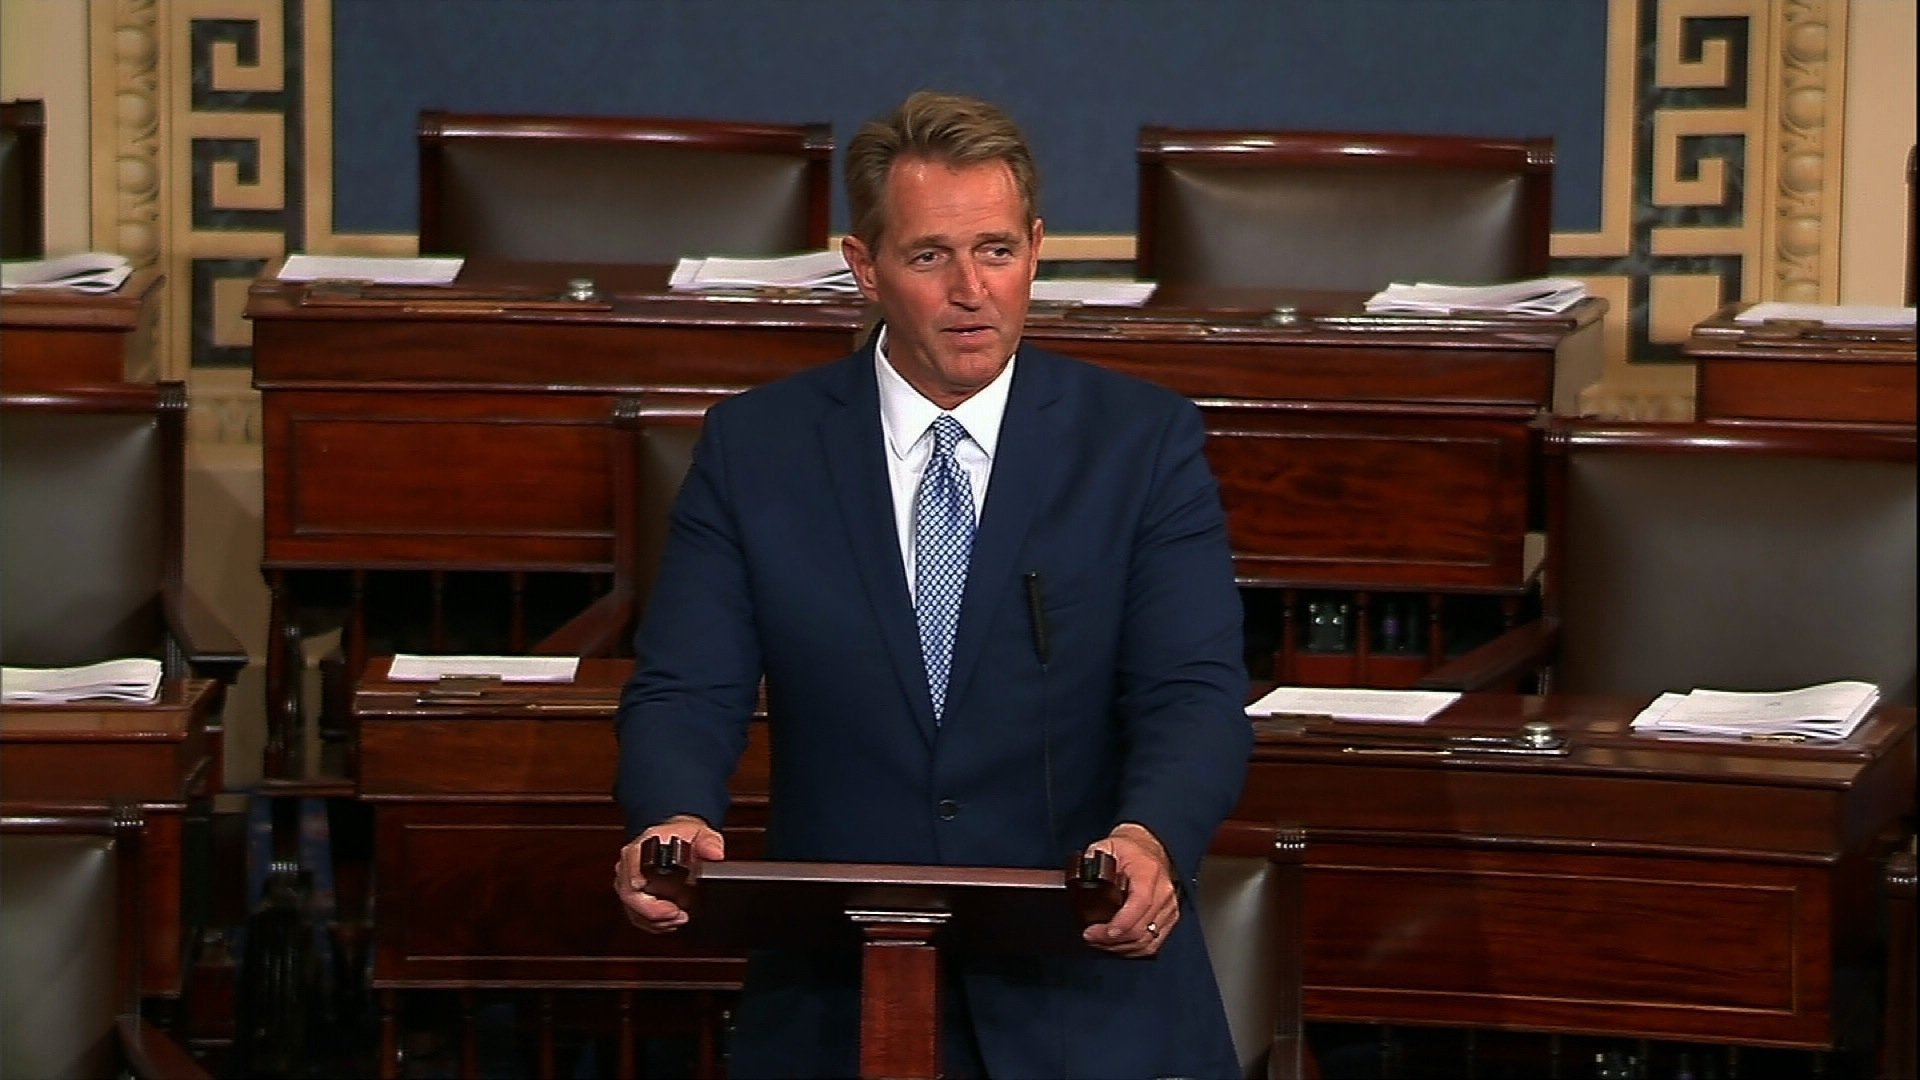 Arizona Senator Jeff Flake Announces He Will Not Seek Re-Election in 2018